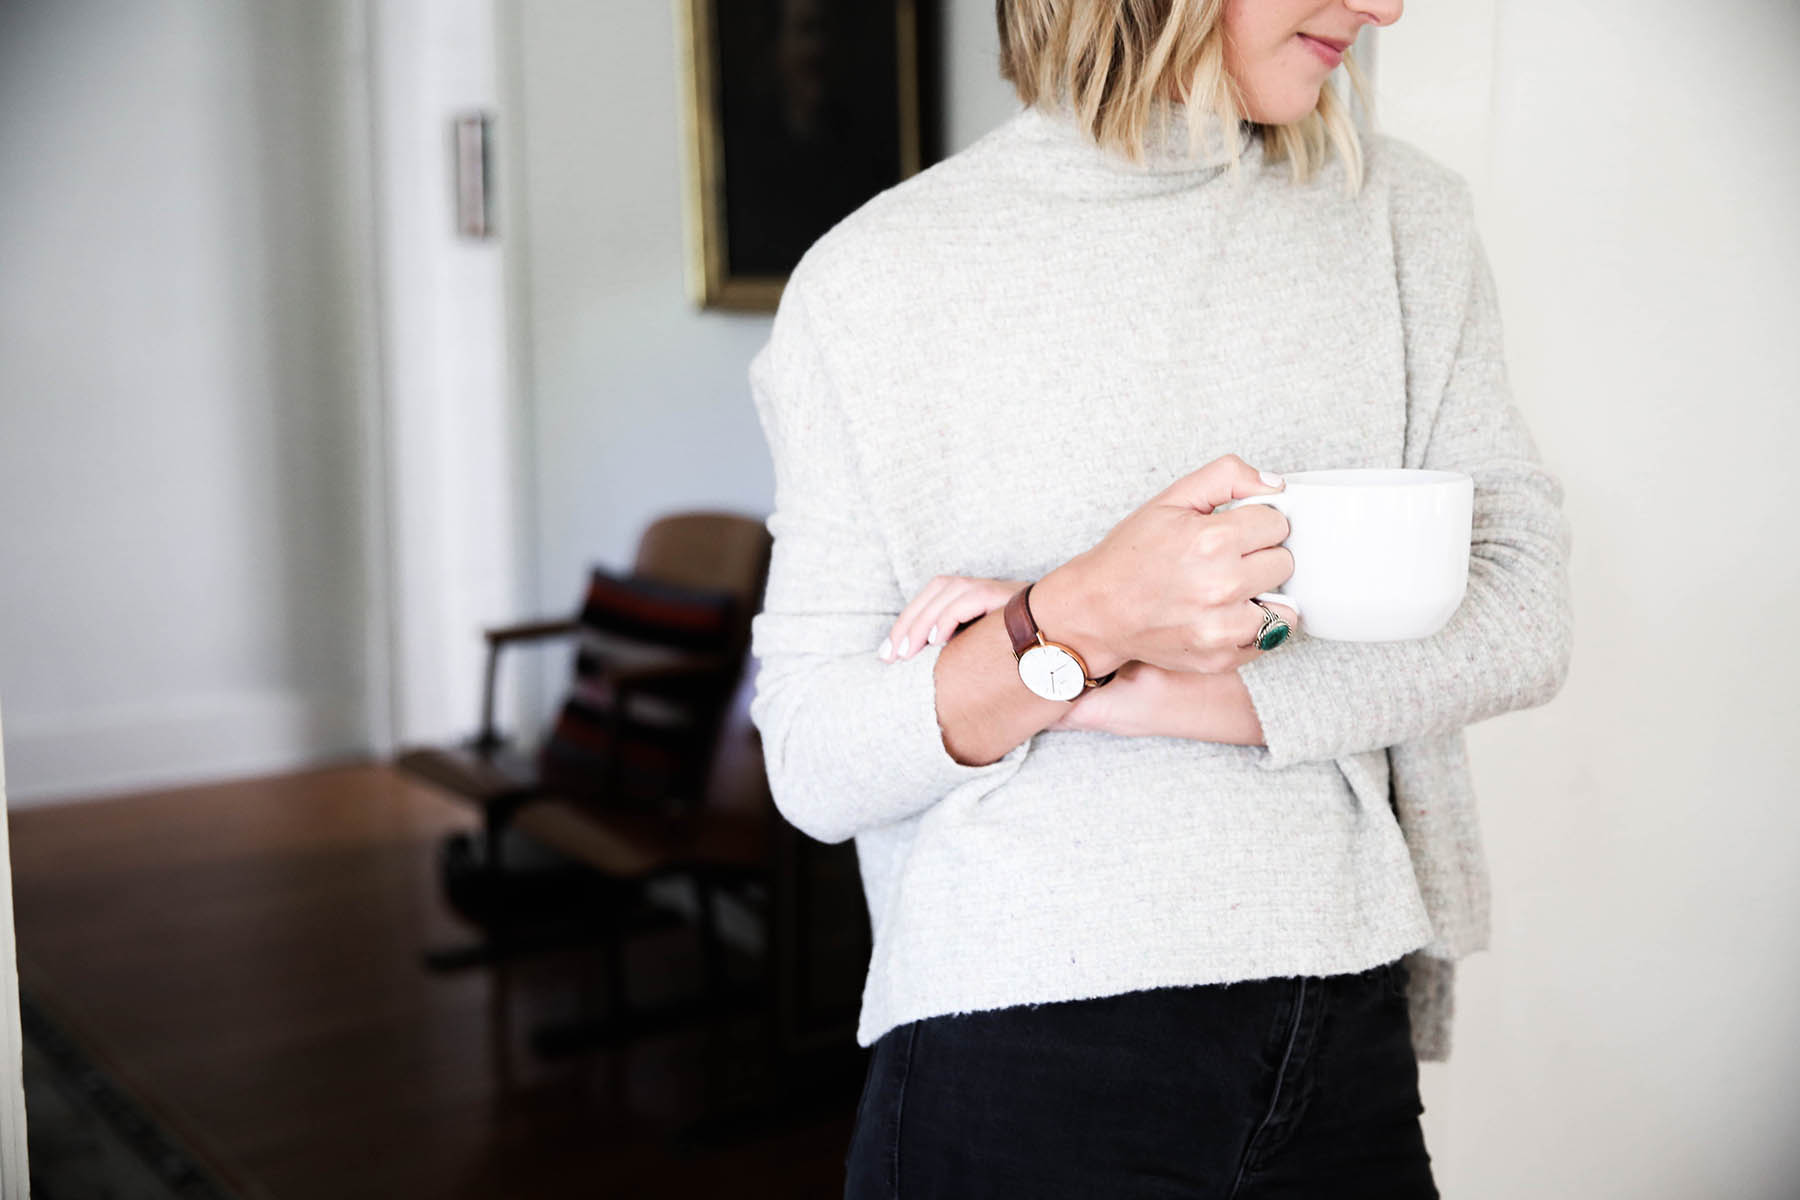 free people arctic fox sweater and daniel wellington watch